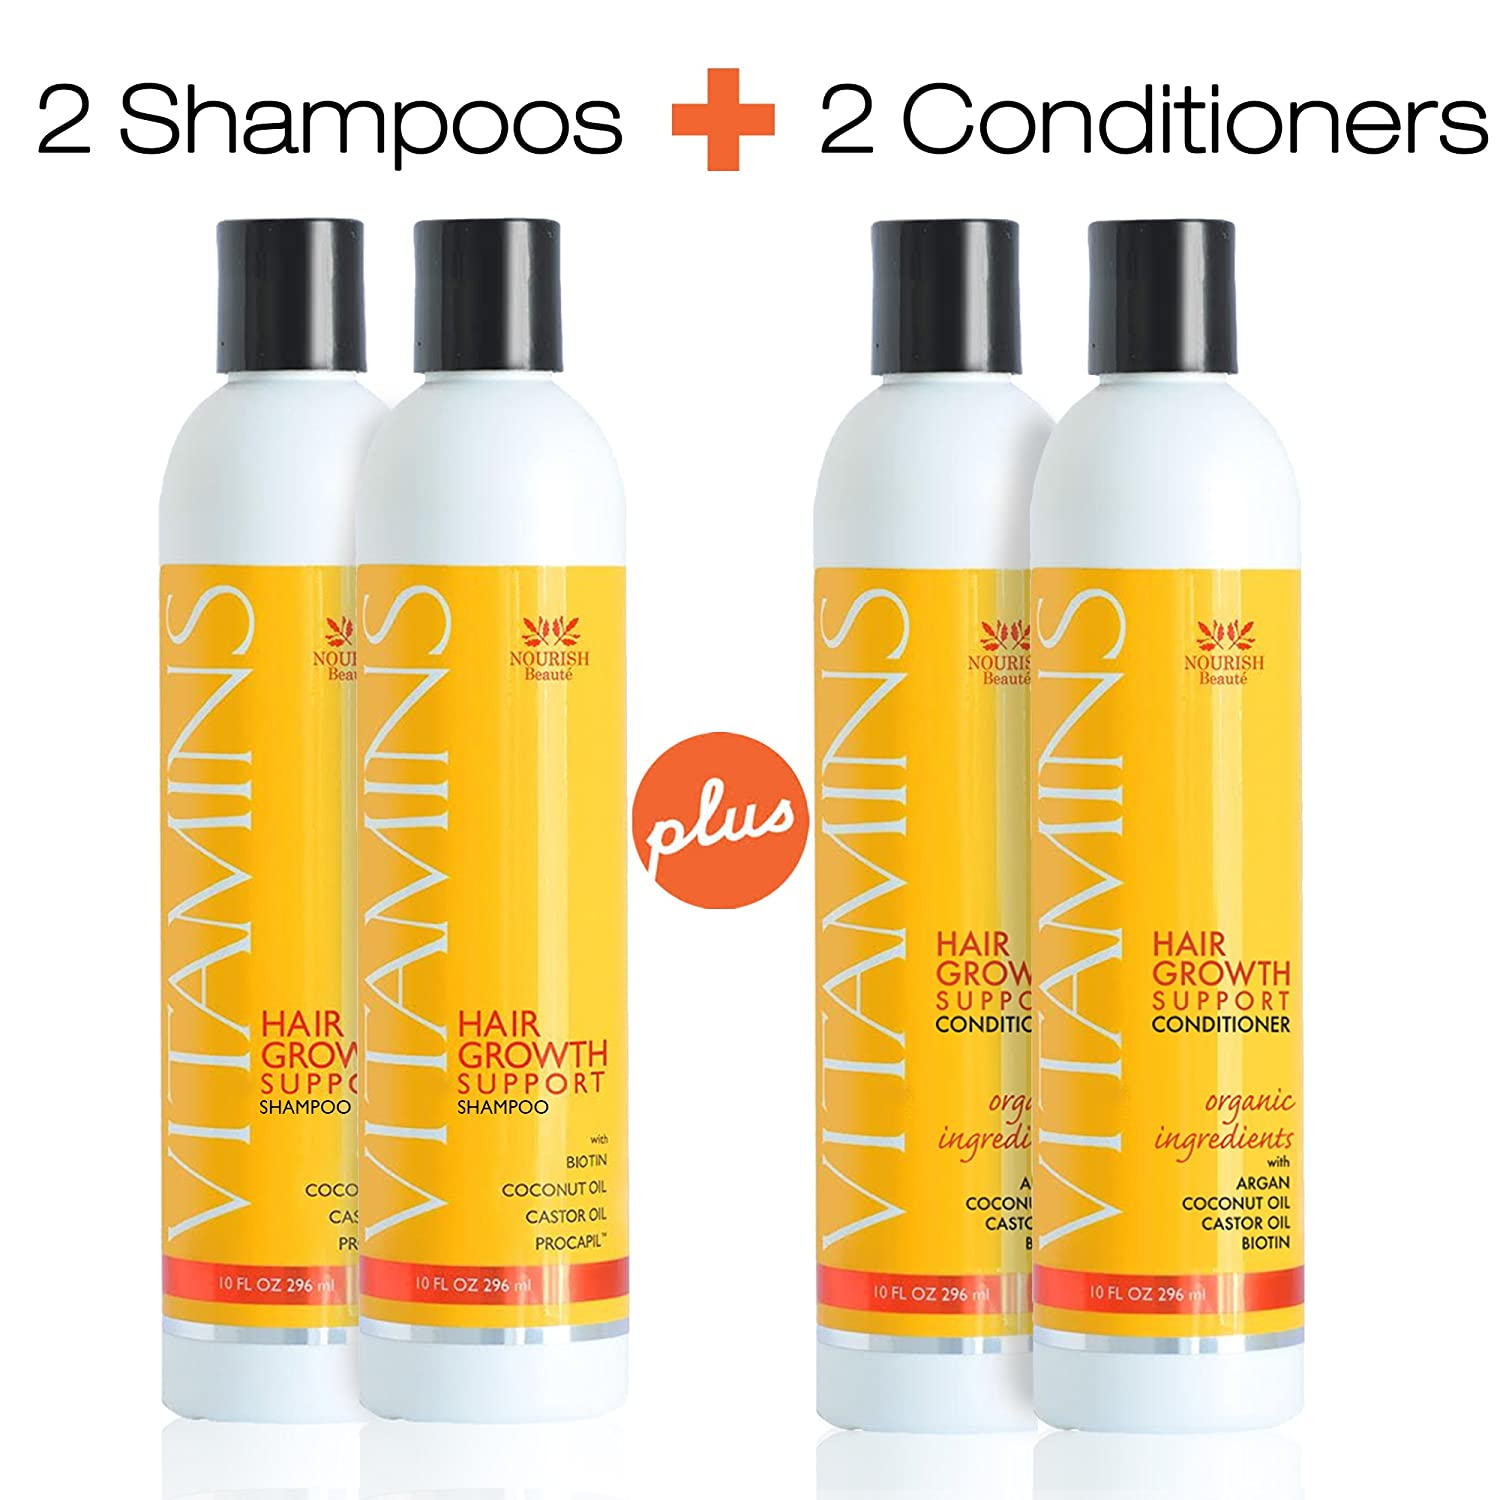 SAVE ON 4 Bottles - Premium Hair Loss Shampoo & Conditioner Set- Organic DHT Blocker - GUARANTEED to Promote Growth and Reduce Thinning w/Argan Oil, Biotin and More - 4 Month Supply Nourish Beaute